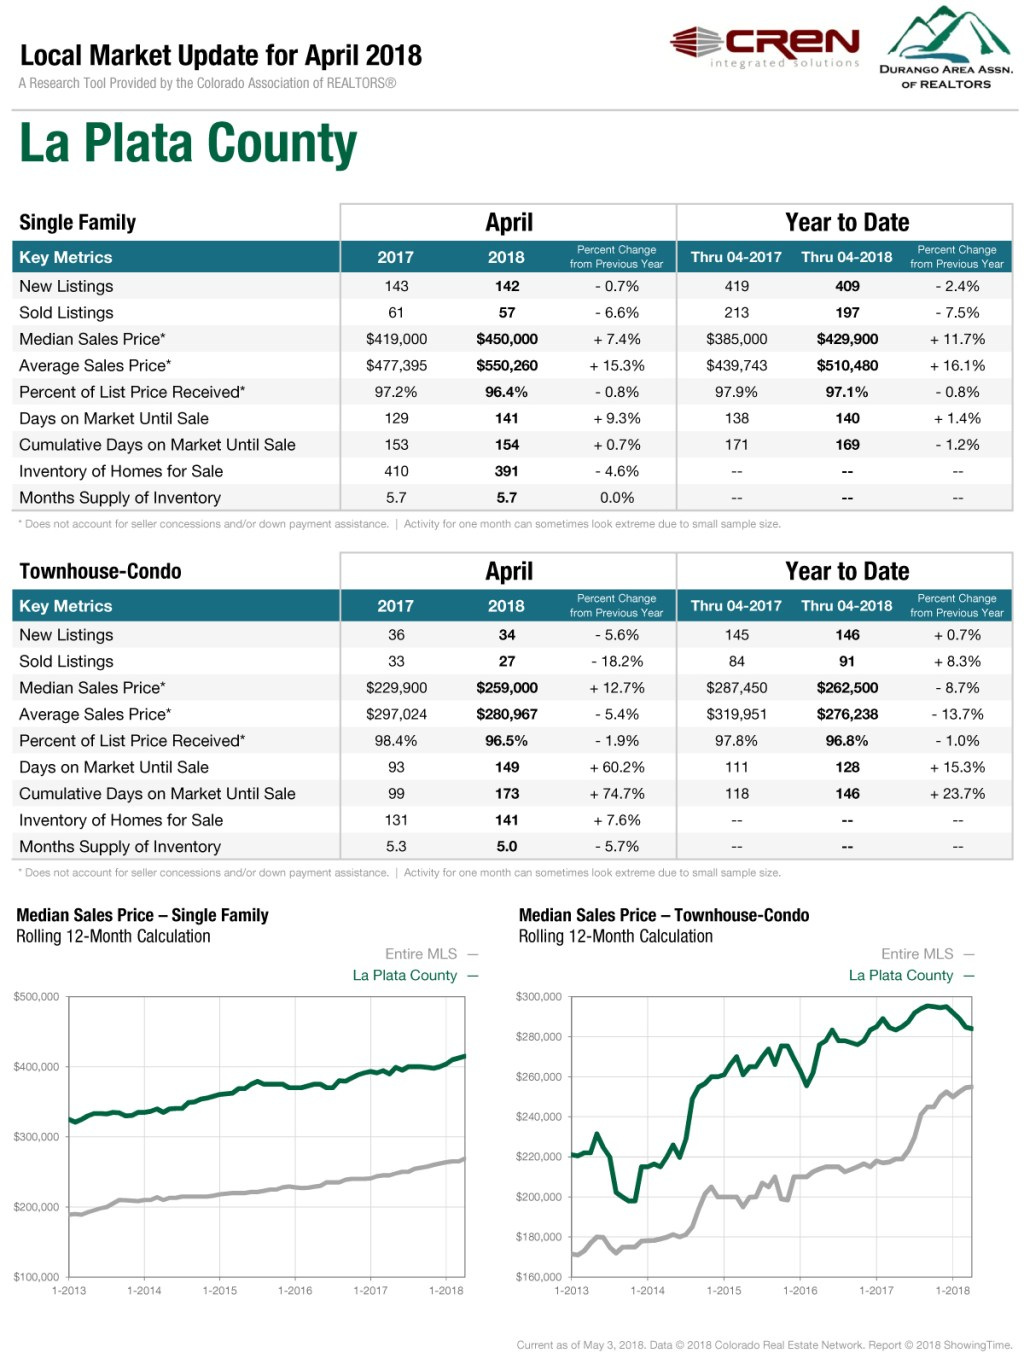 La Plata County April Stats. Real Estate